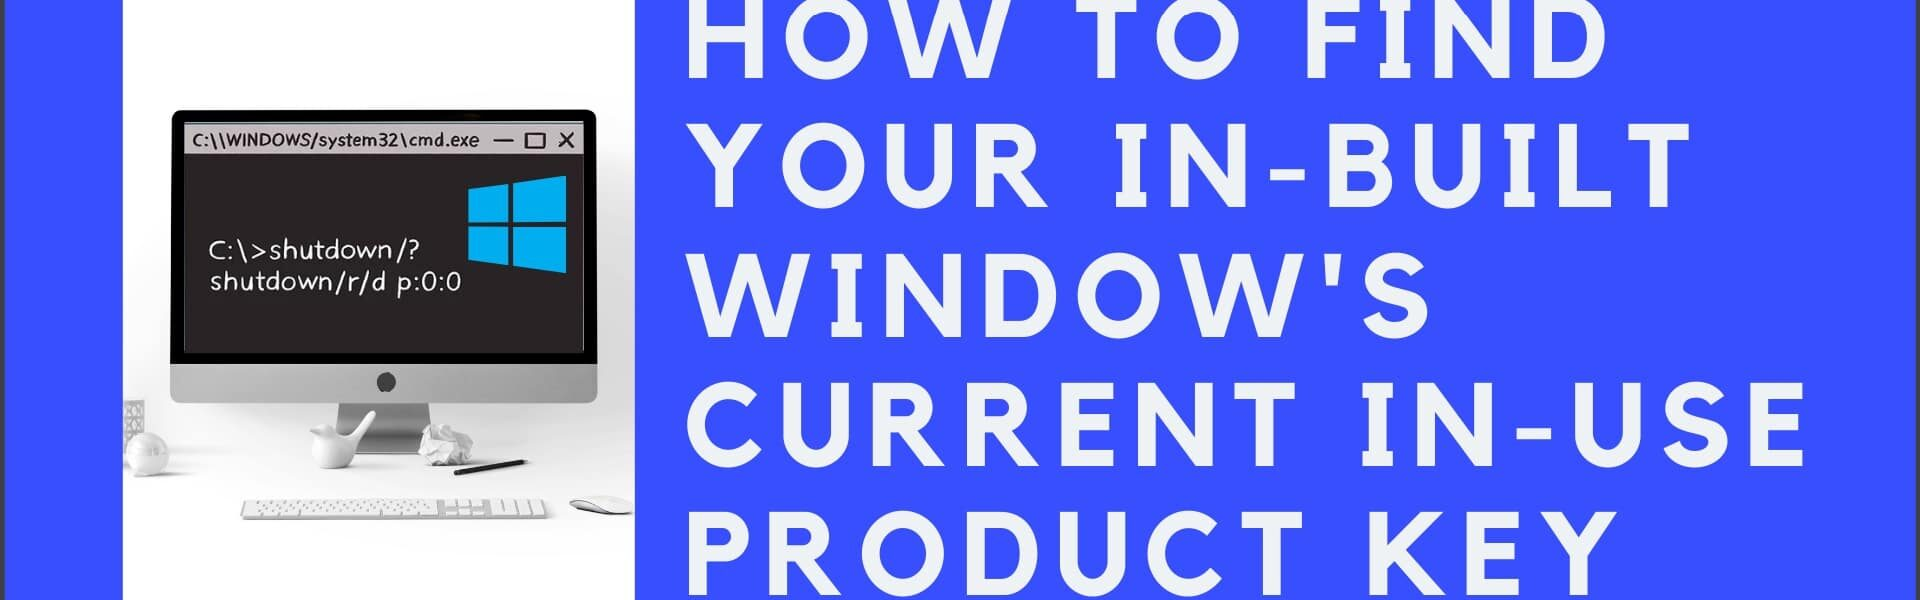 Find your pre-installed windows 7/8/10 product key